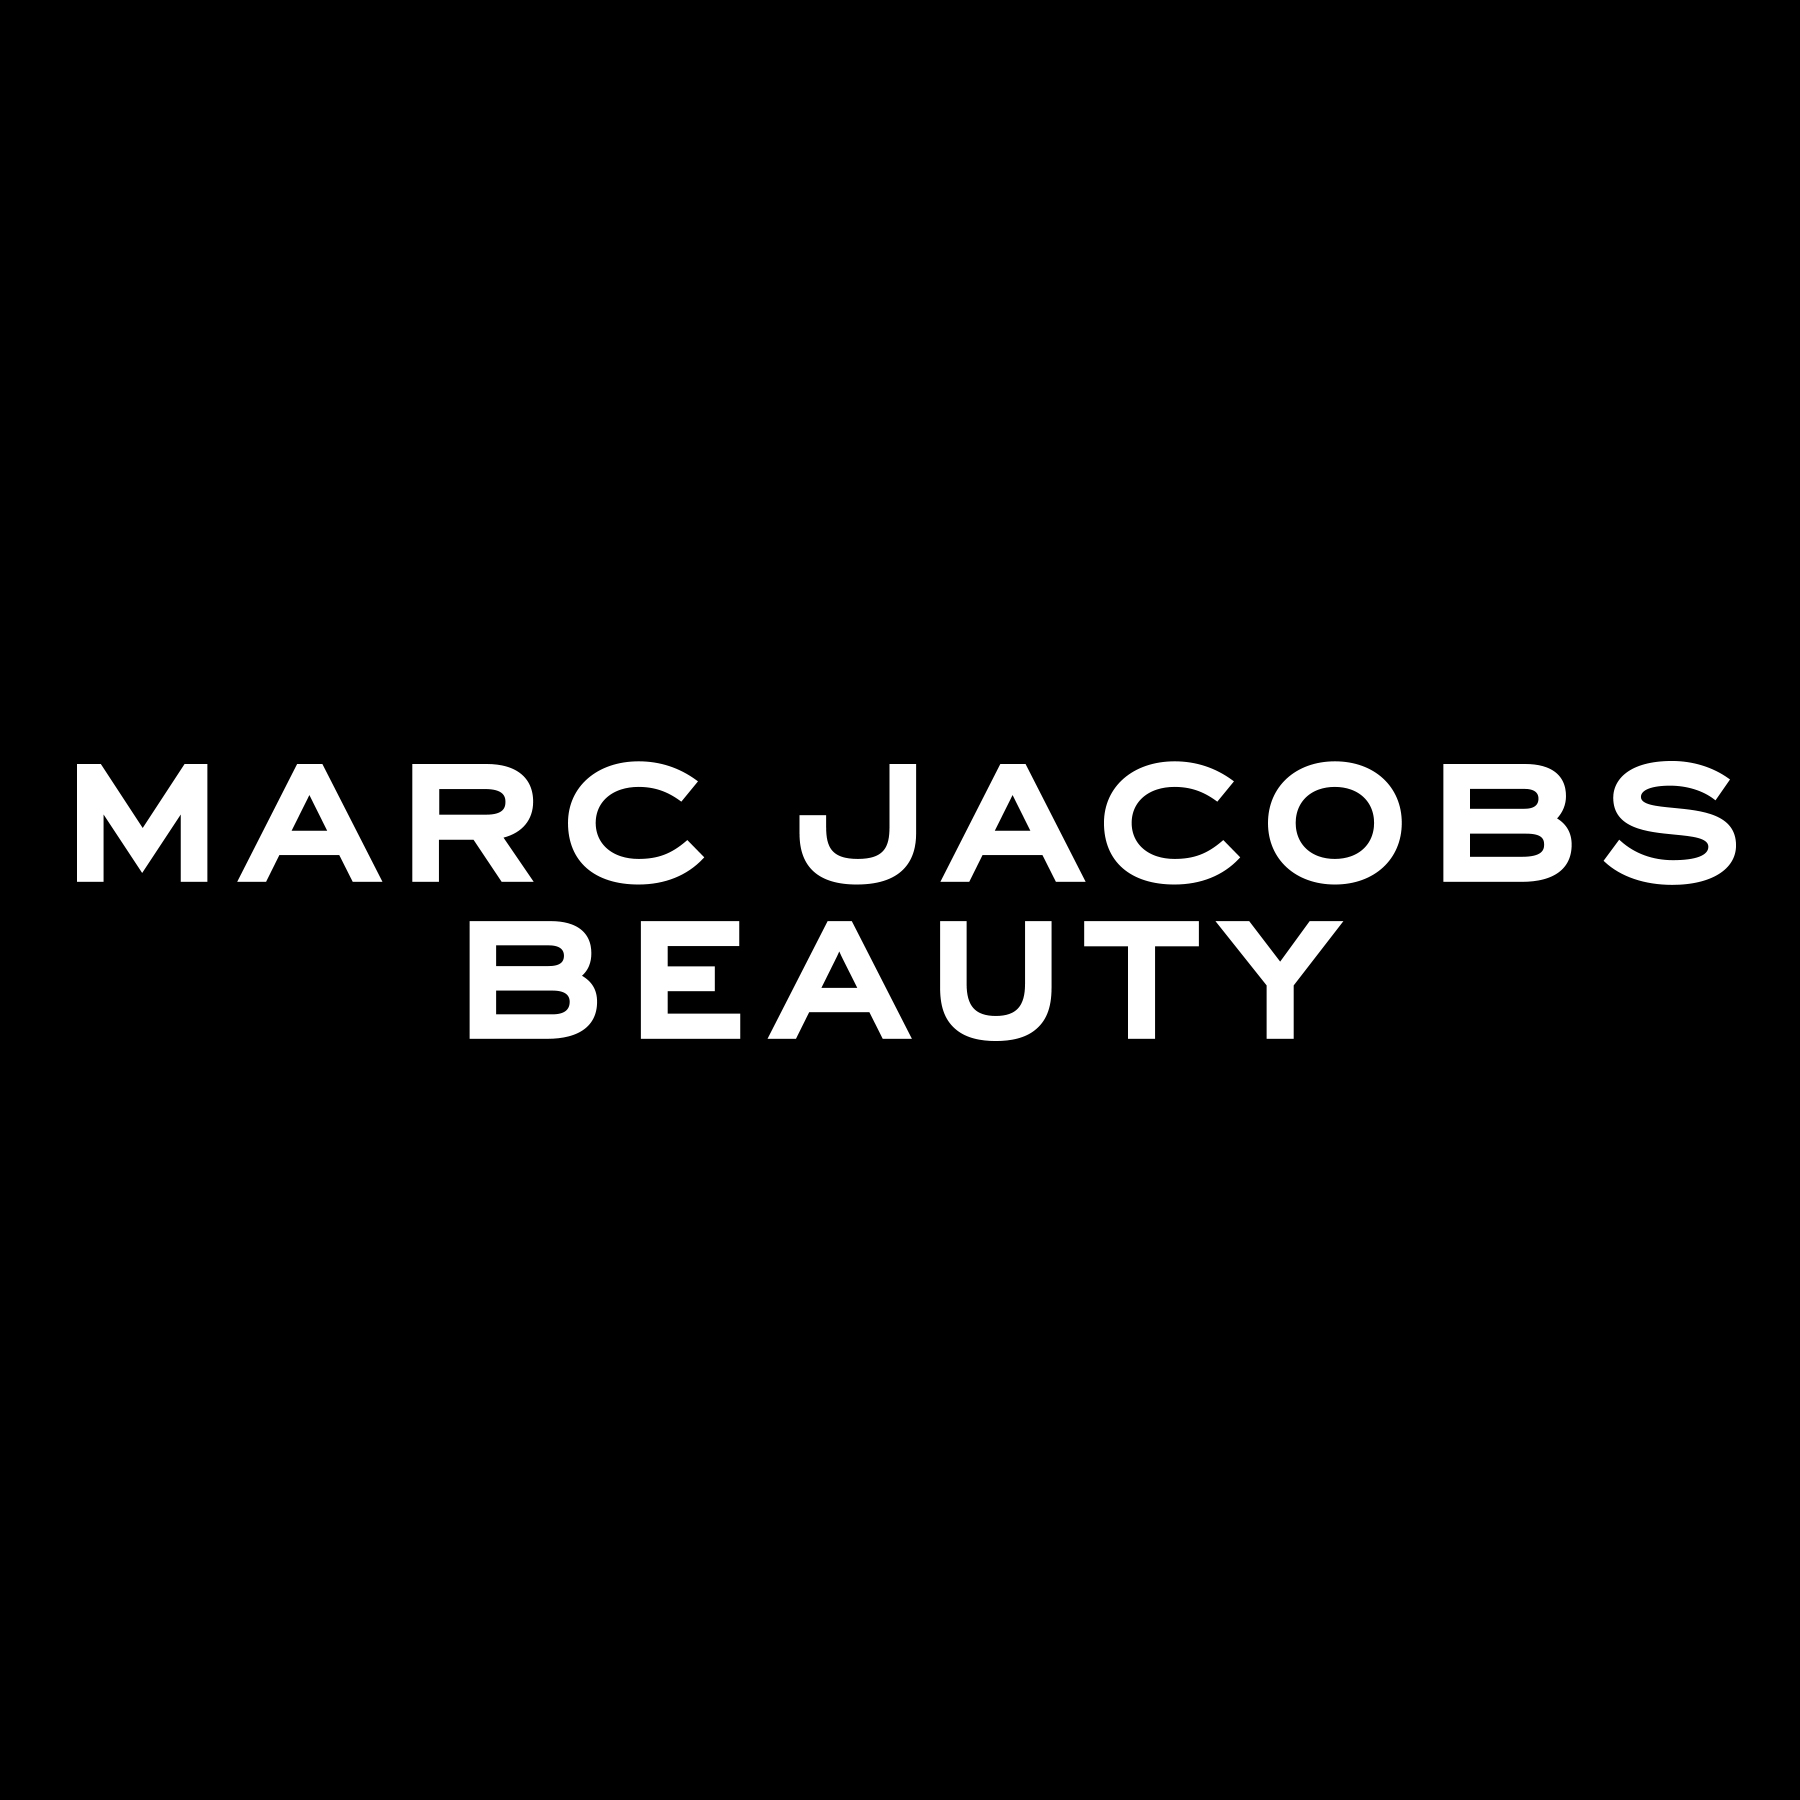 marc-jacobs-beauty-logo